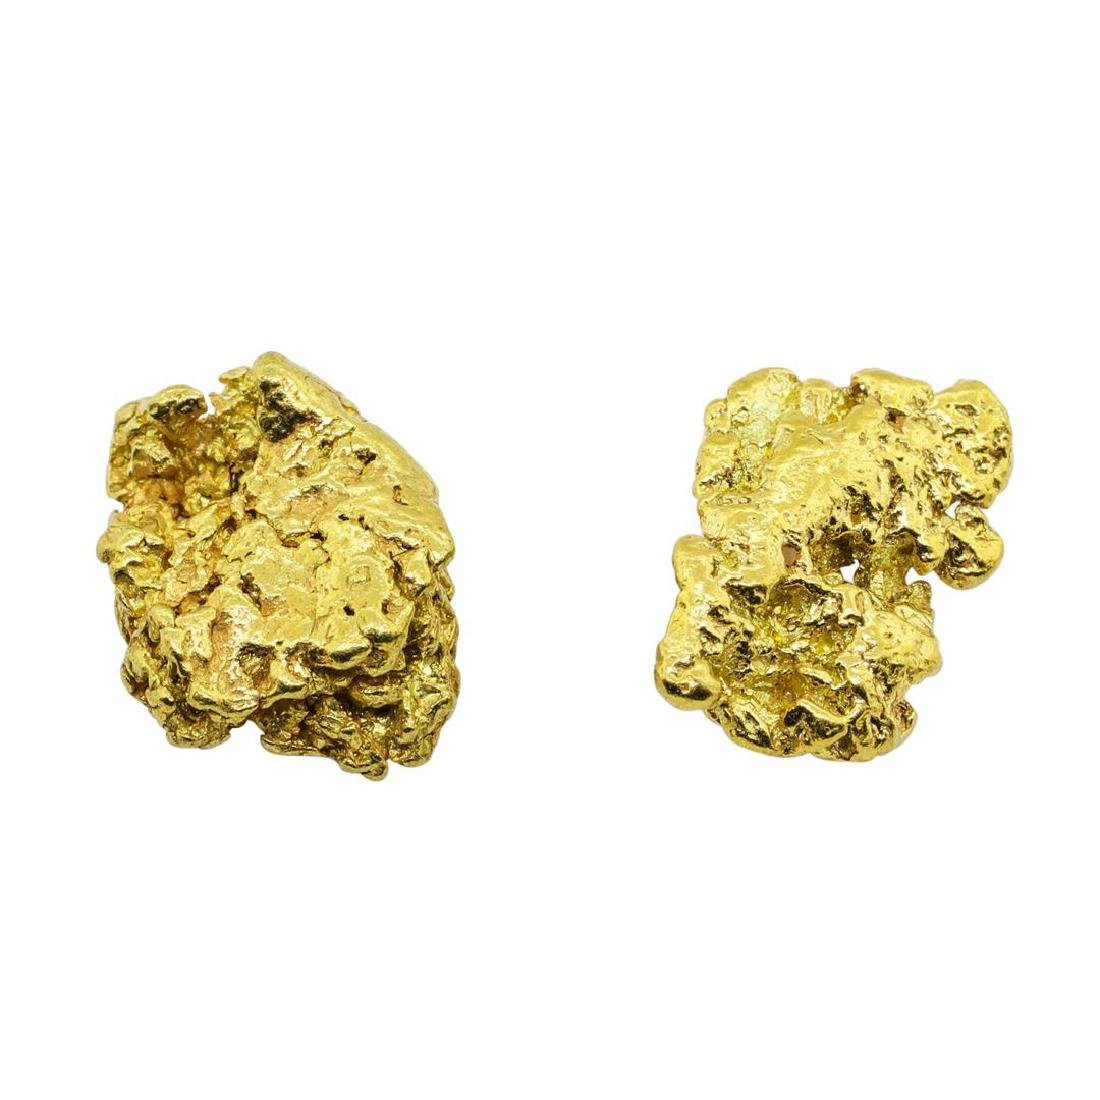 Lot of (2) Gold Nuggets 2.2 grams Total Weight - 2